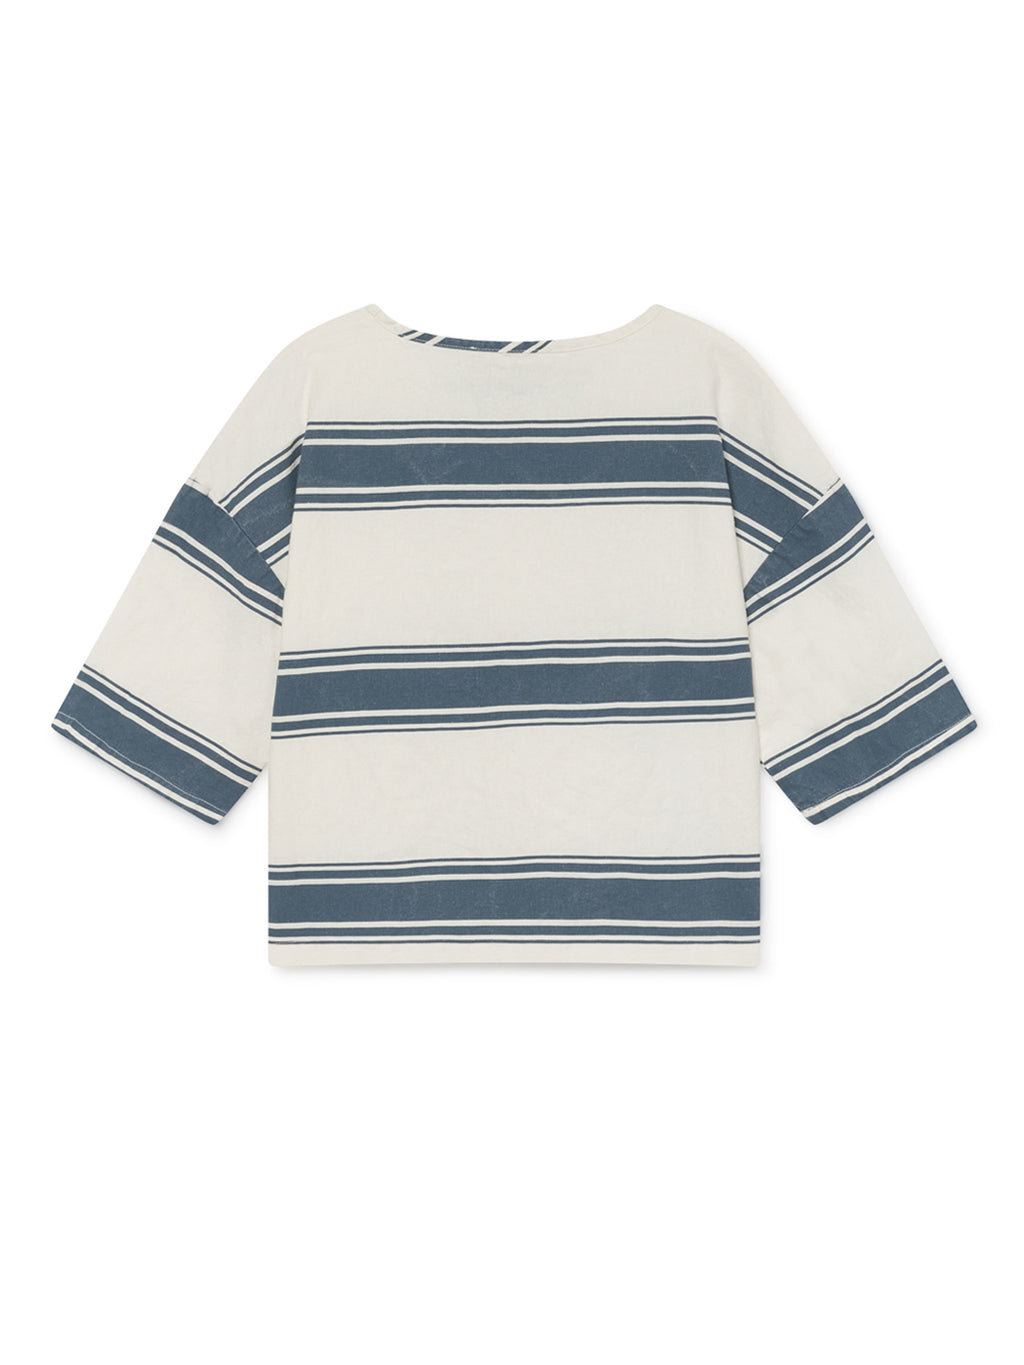 TWOTHIRDS Womens Top: Tilou - Blue Stripes back